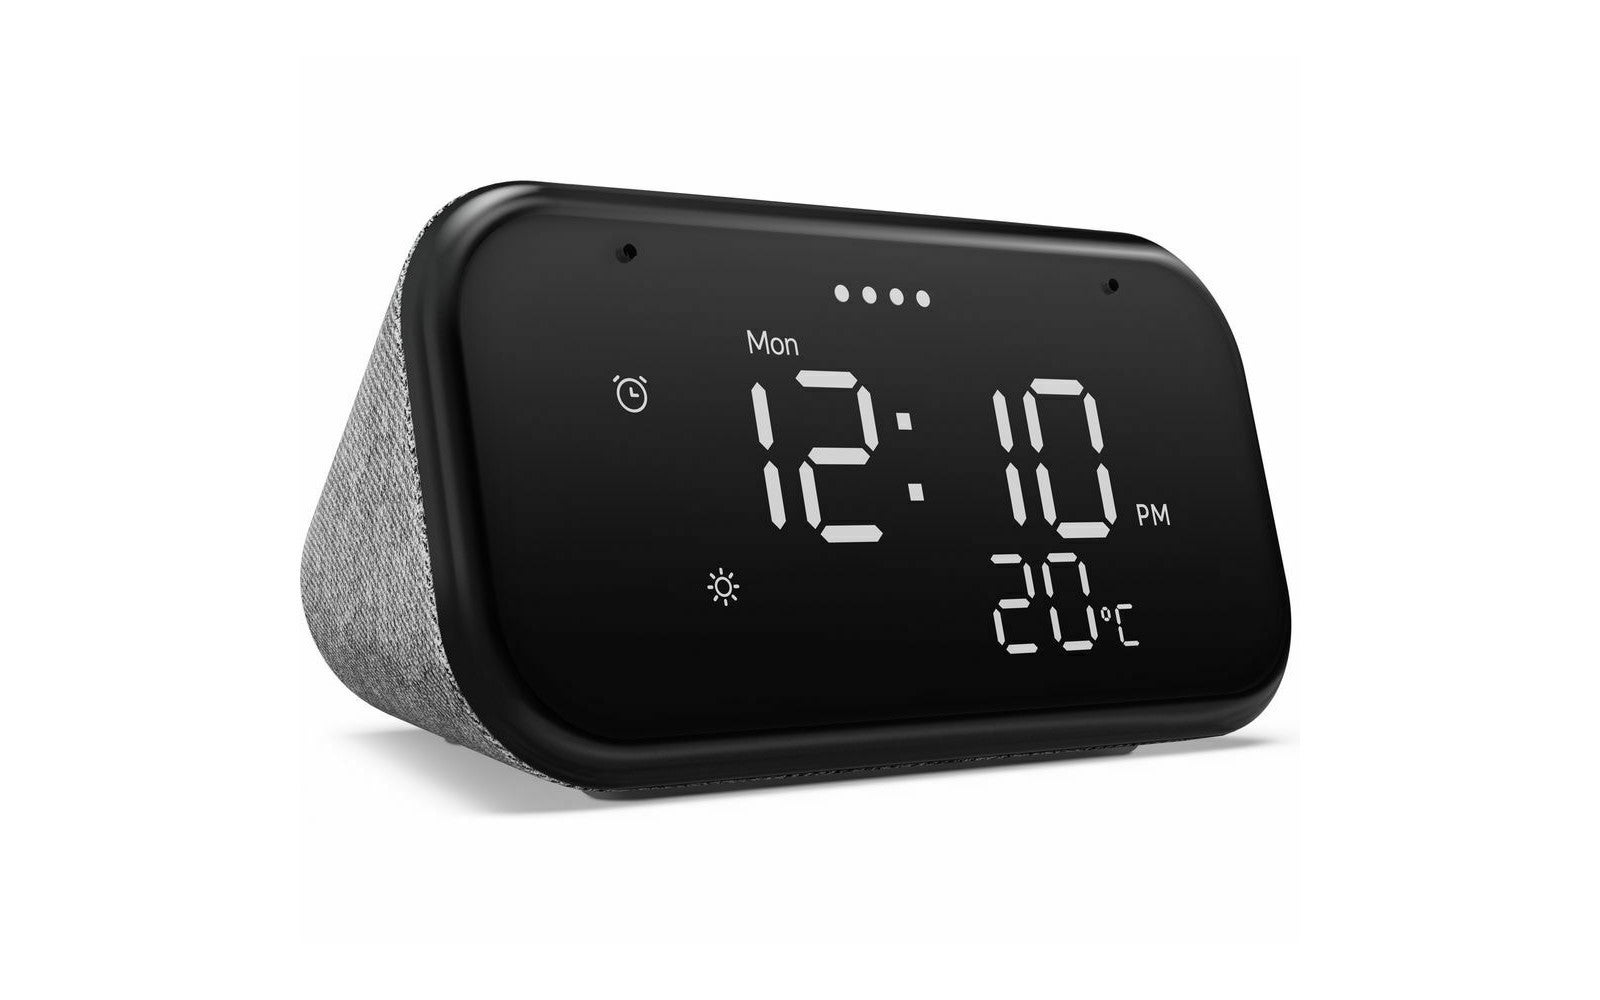 The fashionable Lenovo Sensible Clock Important has dropped to simply £24.99